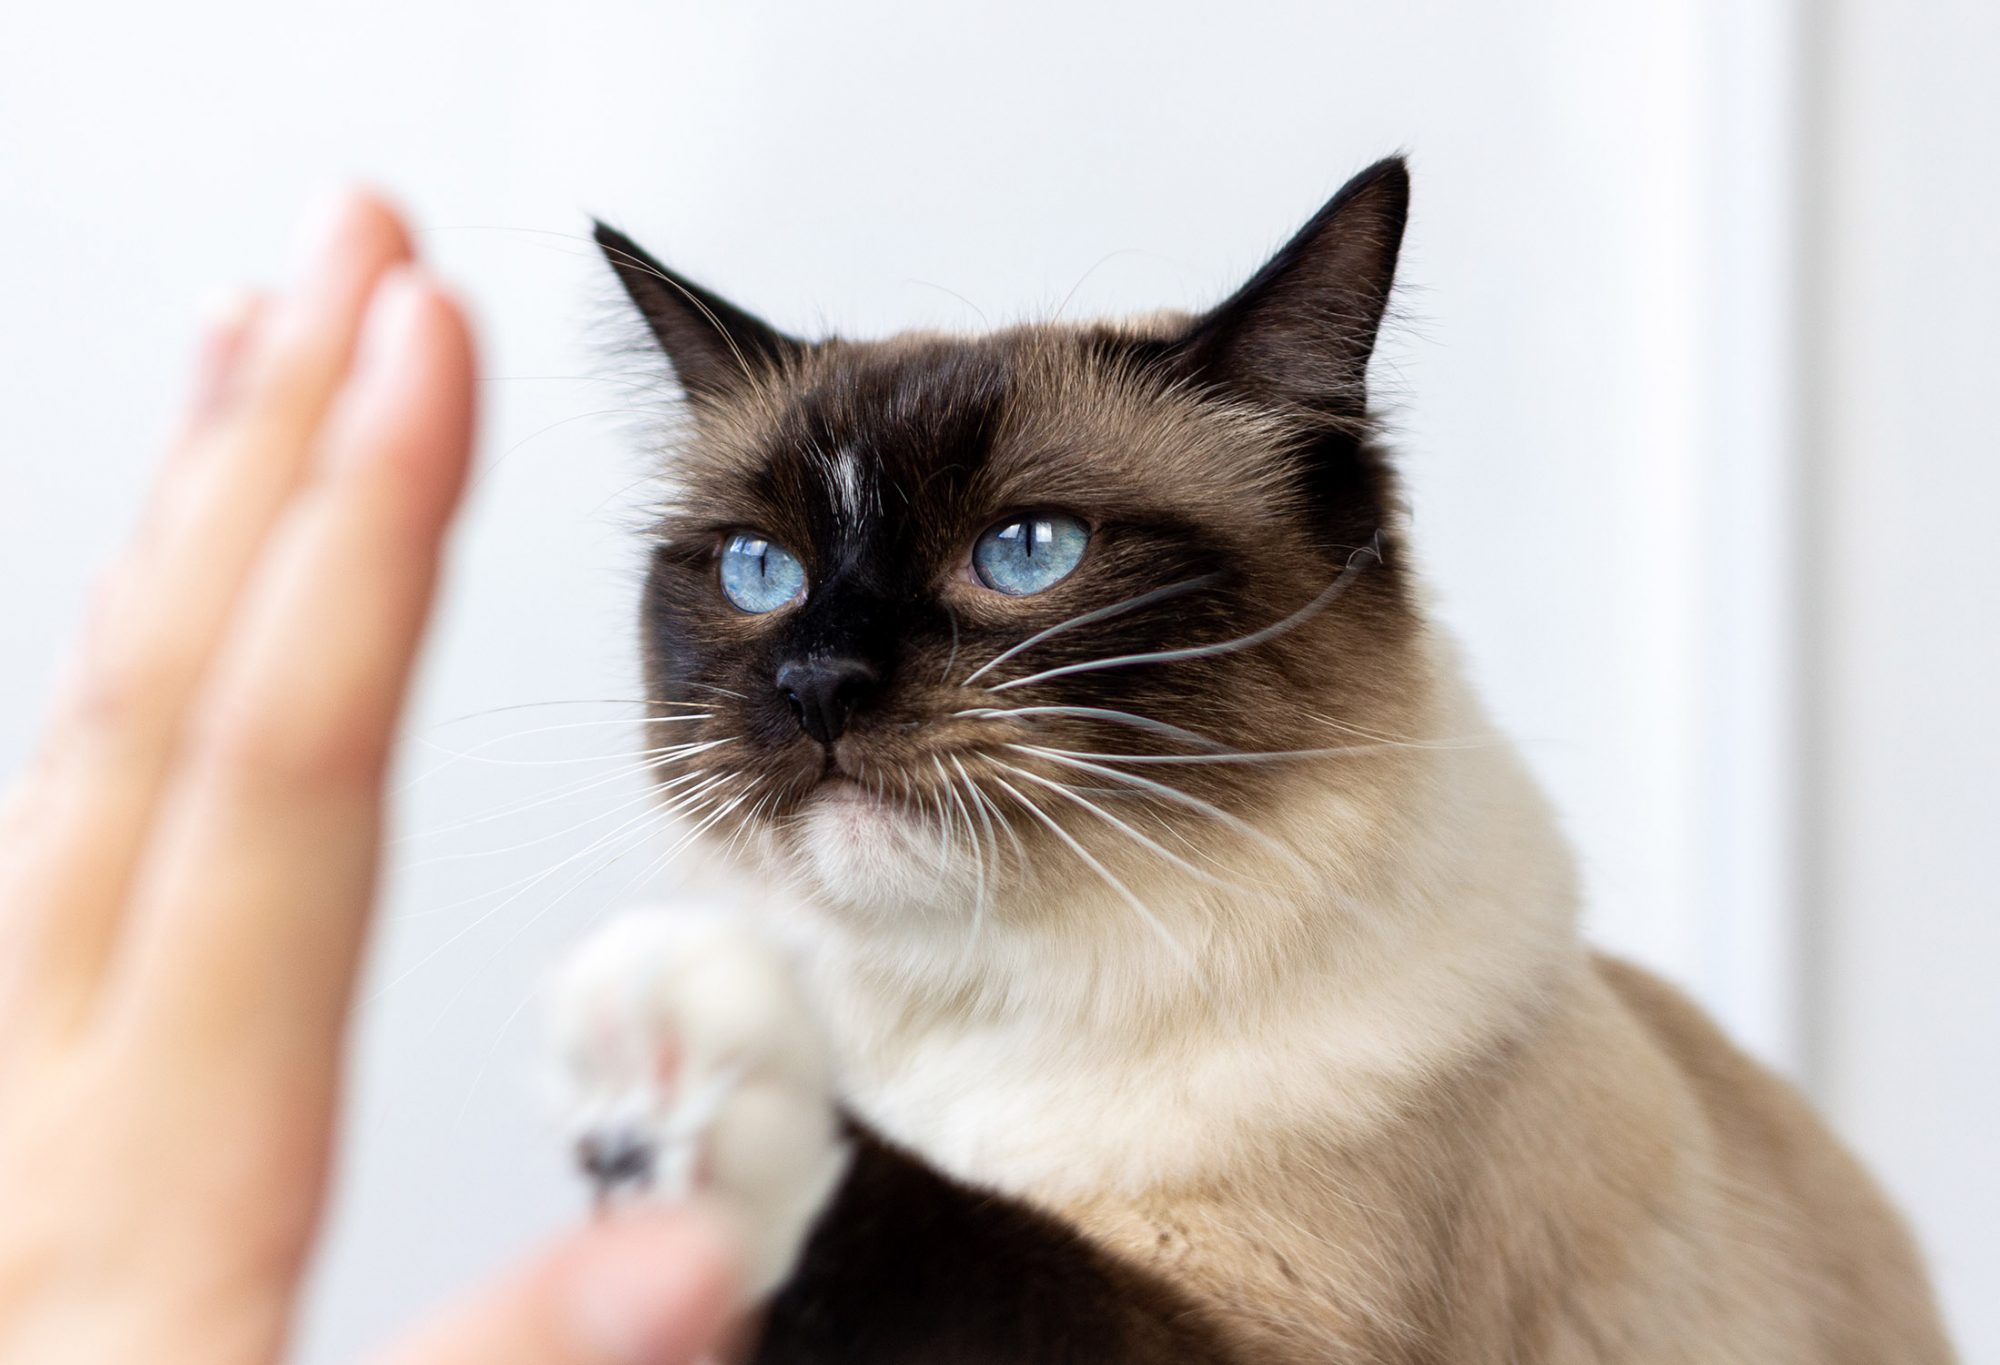 cat watching woman's hand